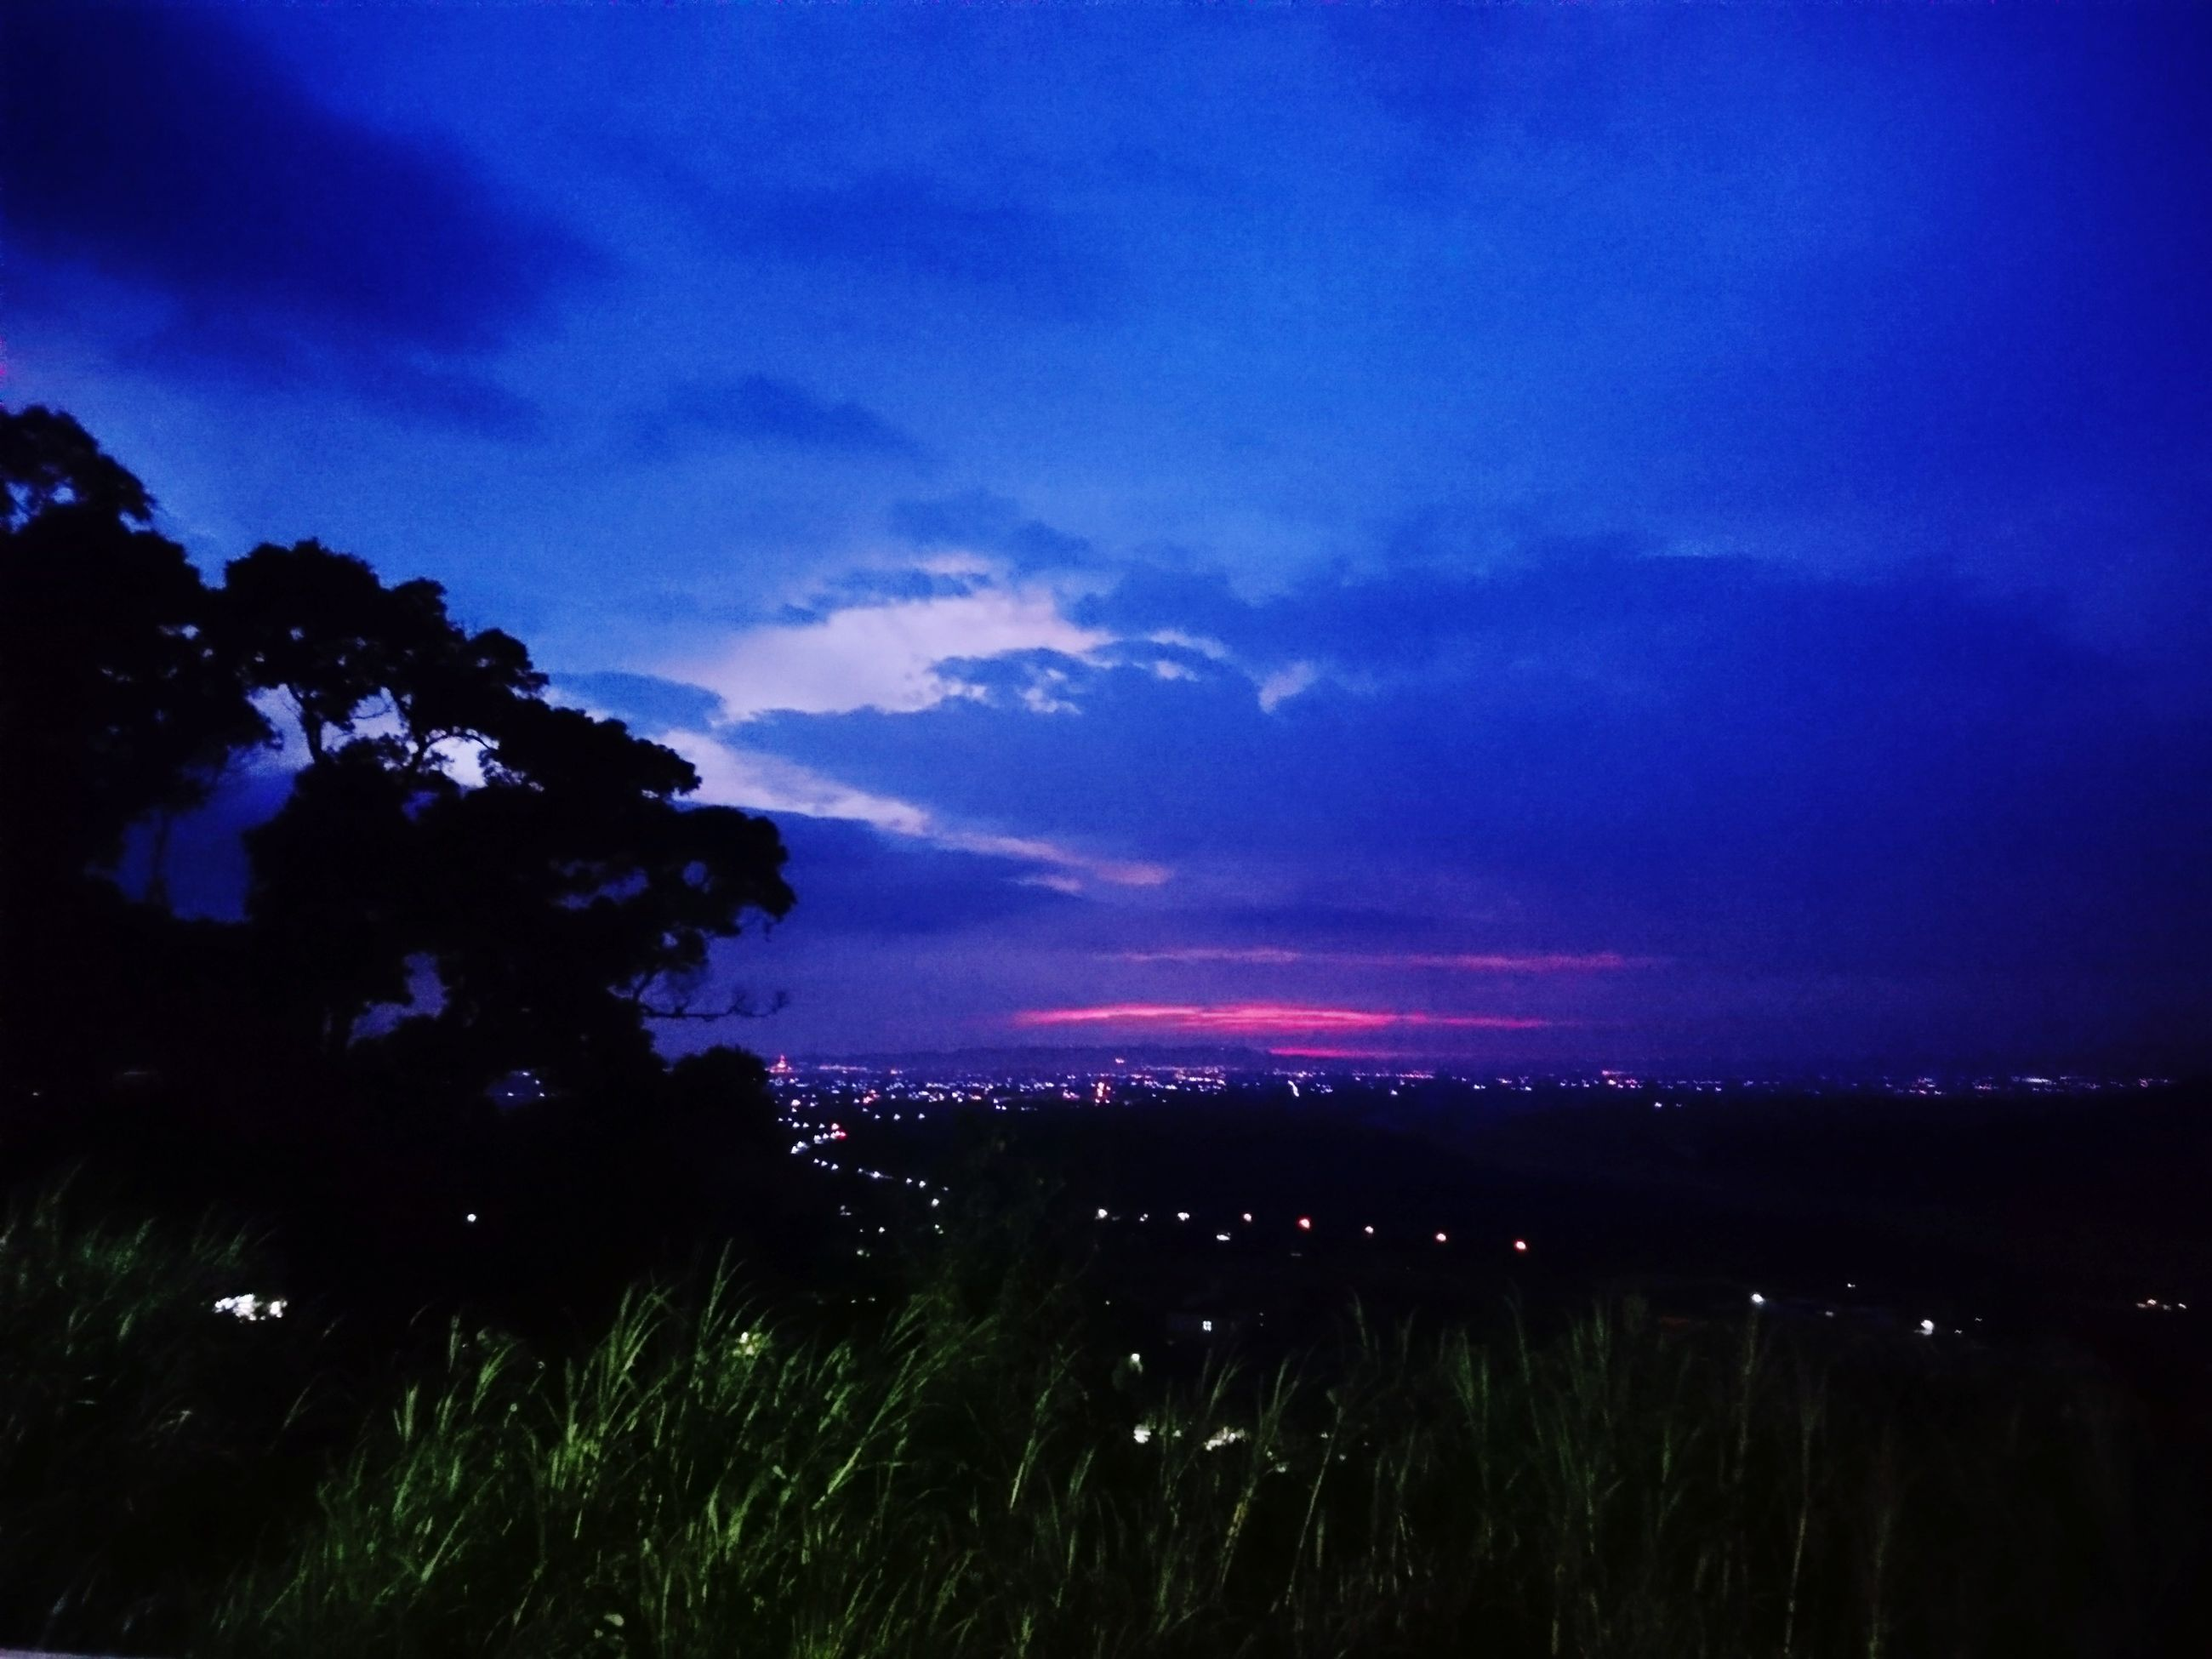 nature, growth, landscape, beauty in nature, sky, no people, blue, night, scenics, grass, outdoors, tree